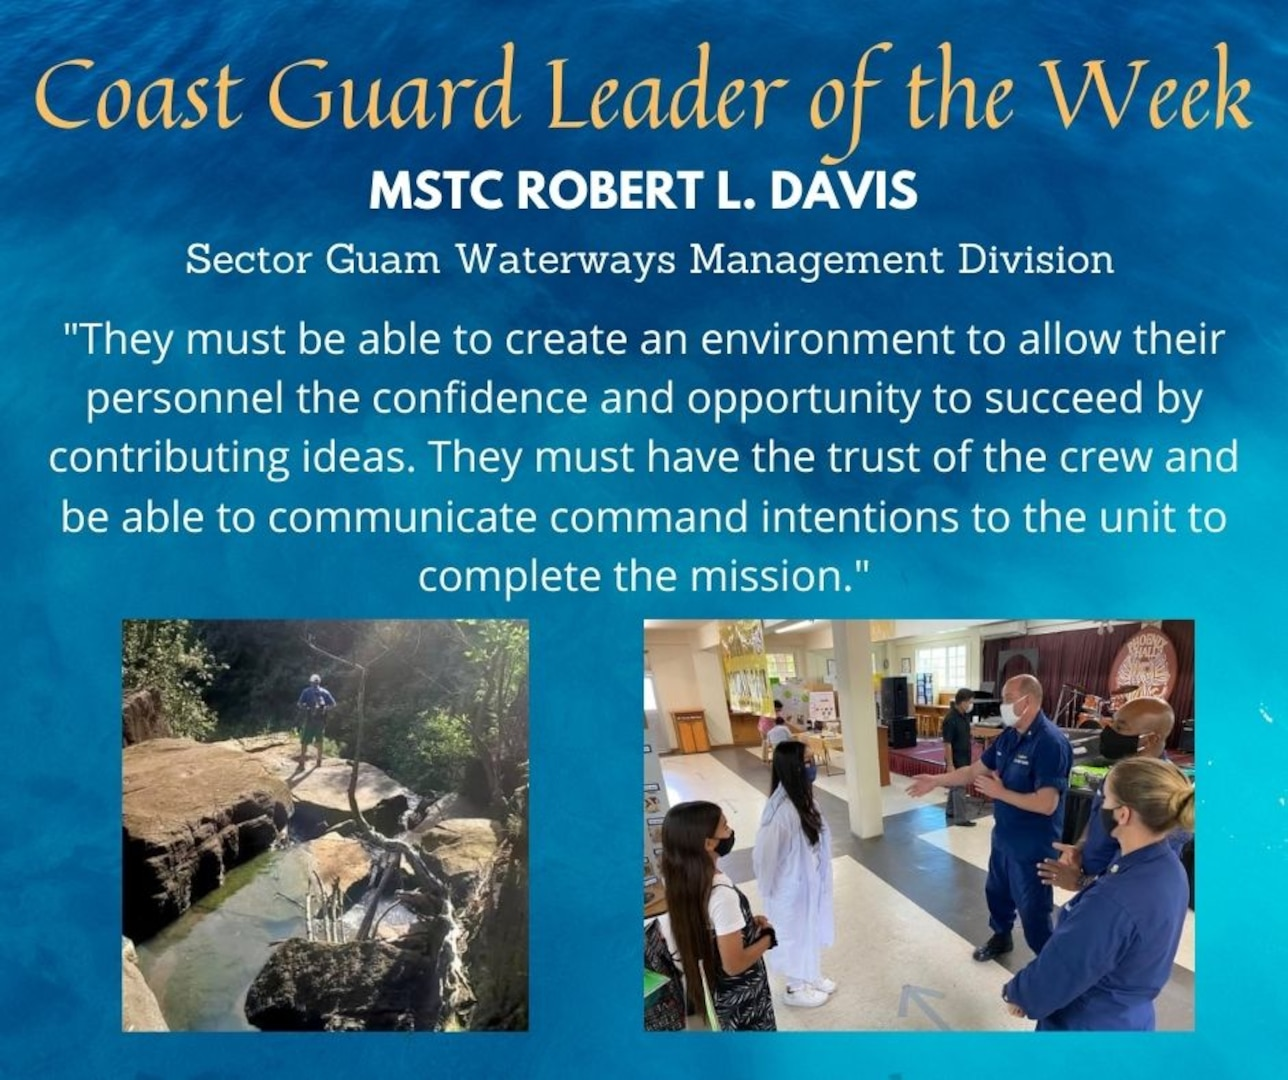 Our Deckplate Leader of the Week is Chief Petty Officer Robert L. Davis